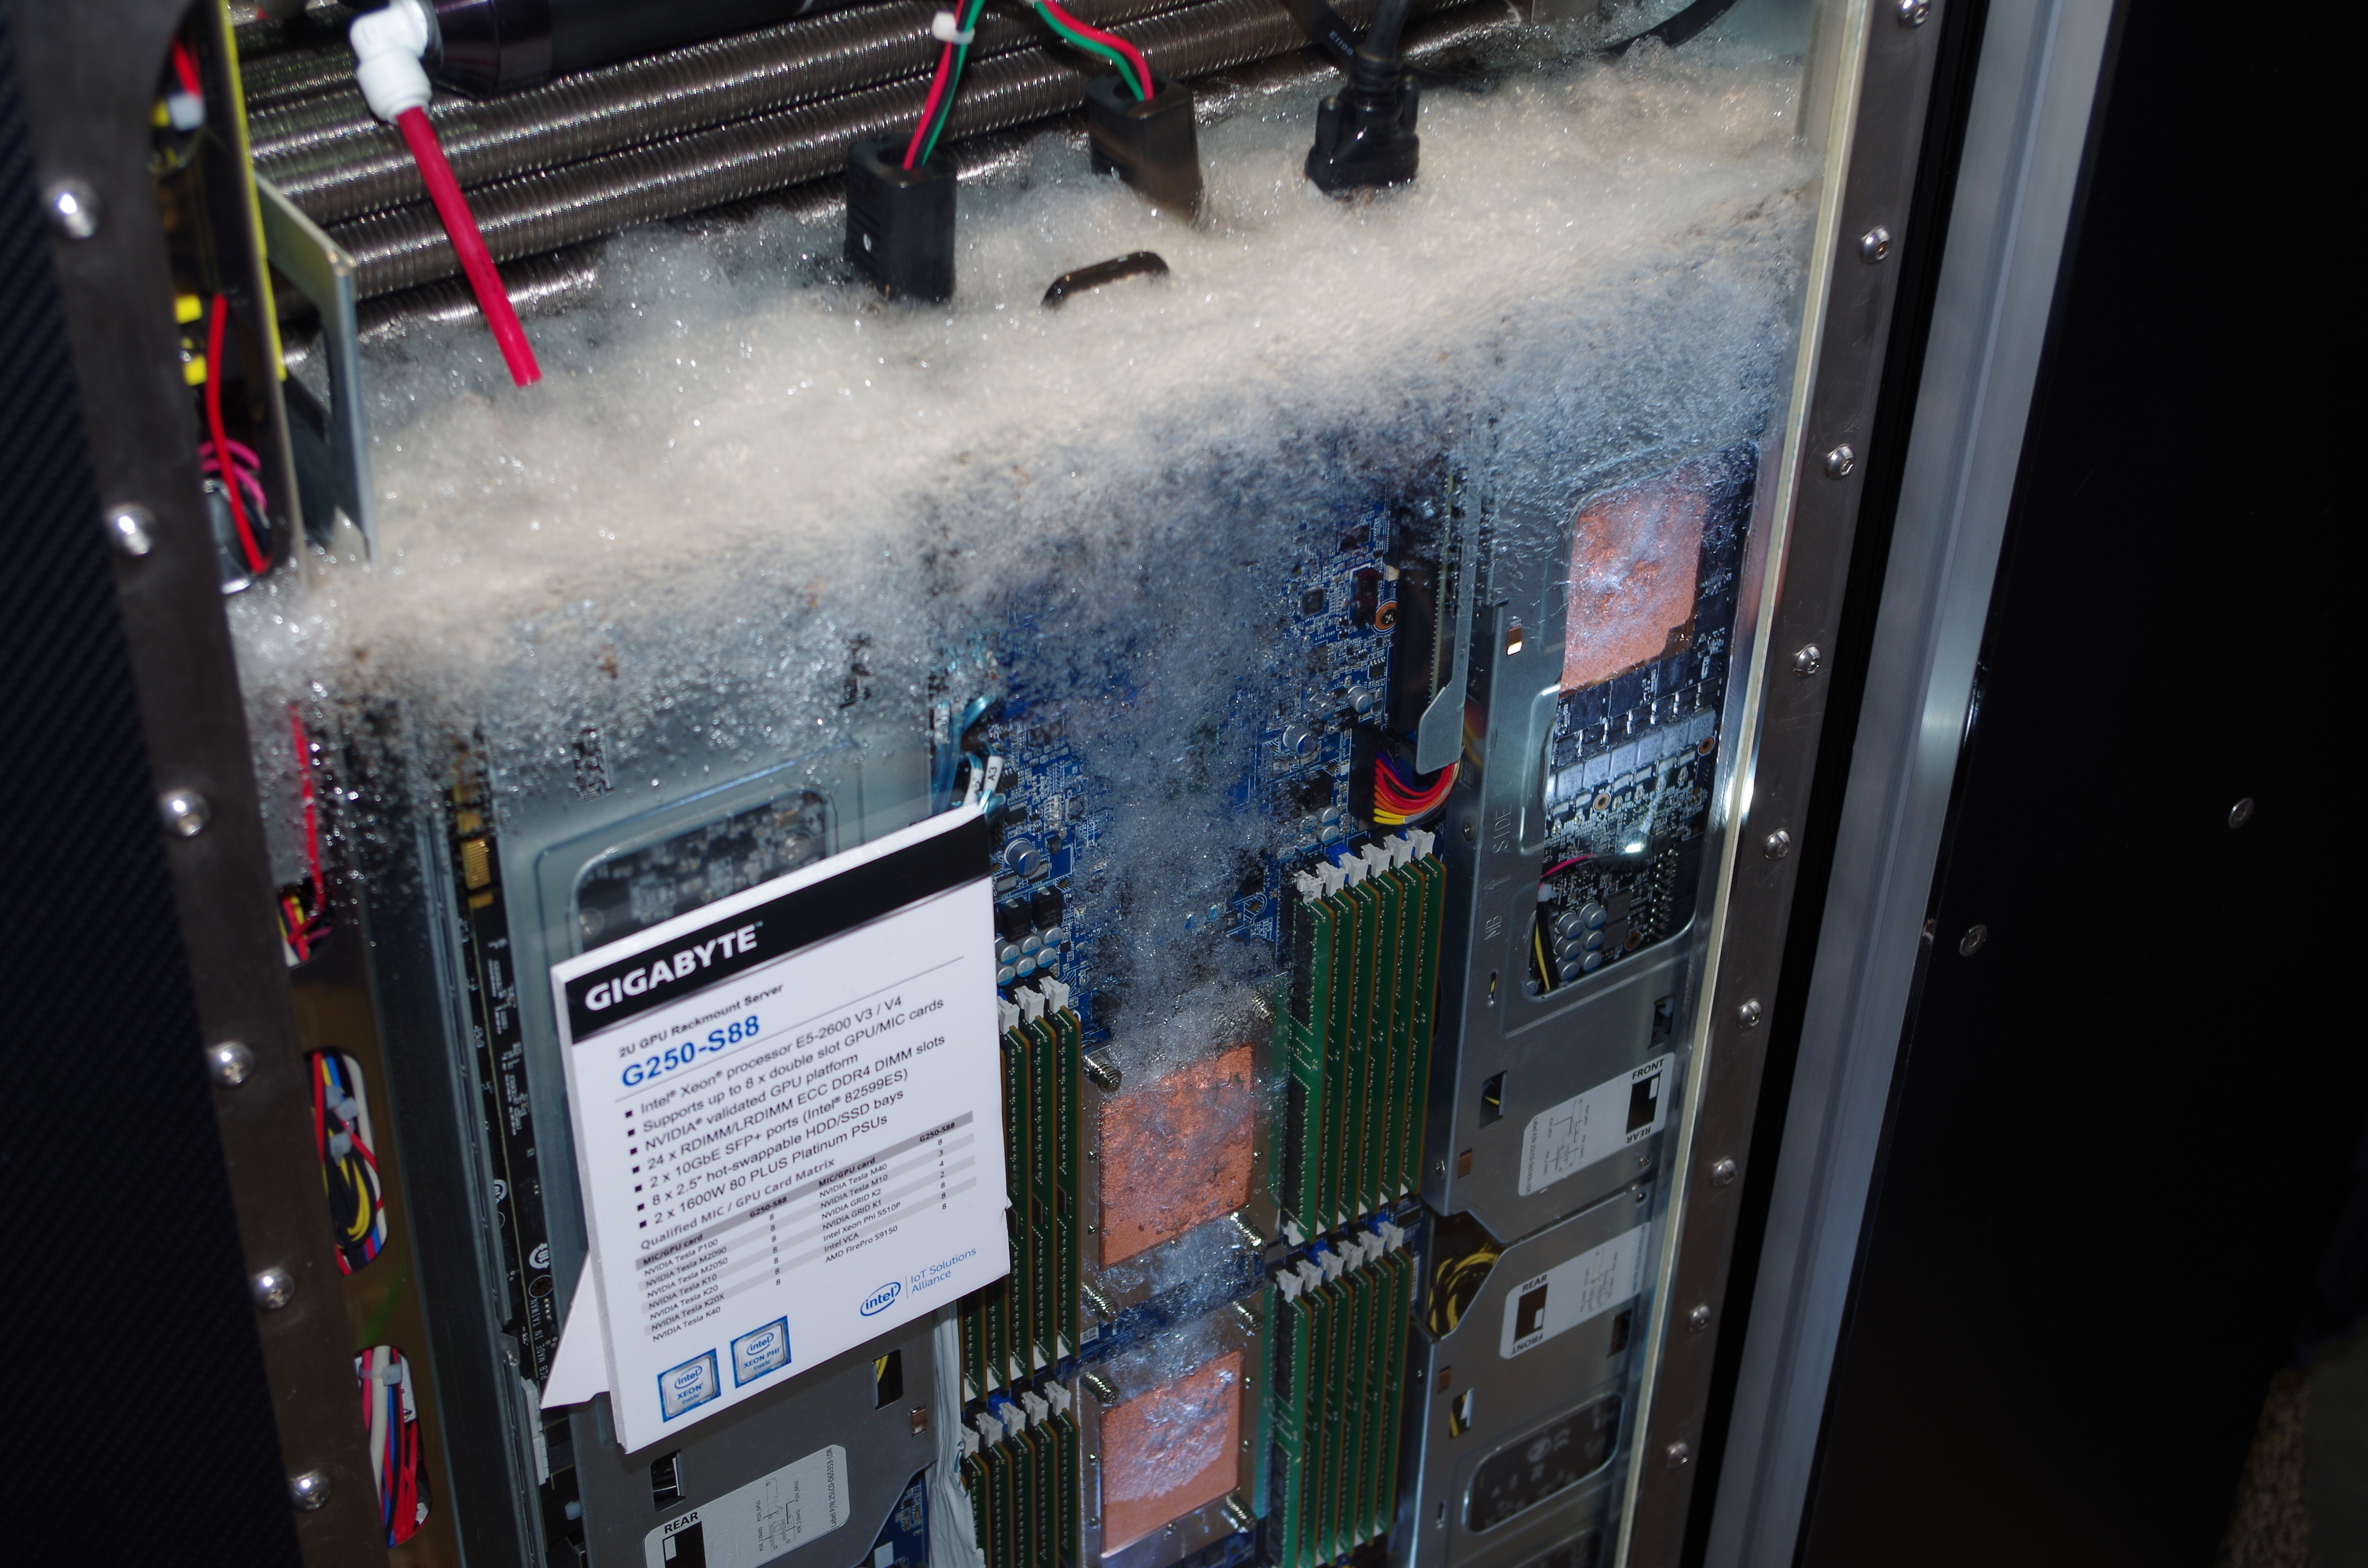 GIGABYTE Server Shows Two-Phase Immersion Liquid Cooling on